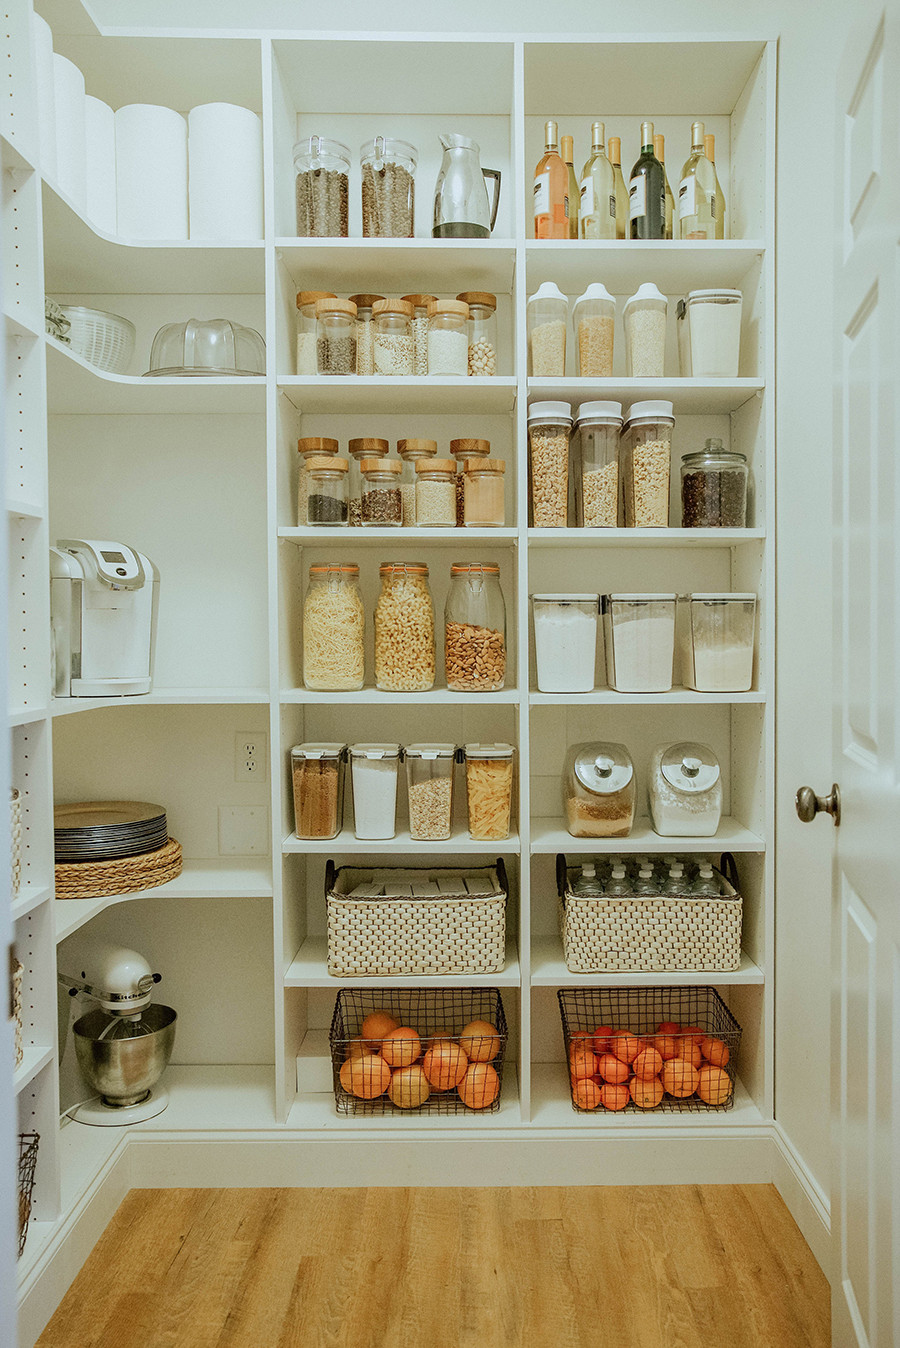 Best ideas about Walk In Pantry . Save or Pin Laundry Room to Walk in Pantry Reveal Now.